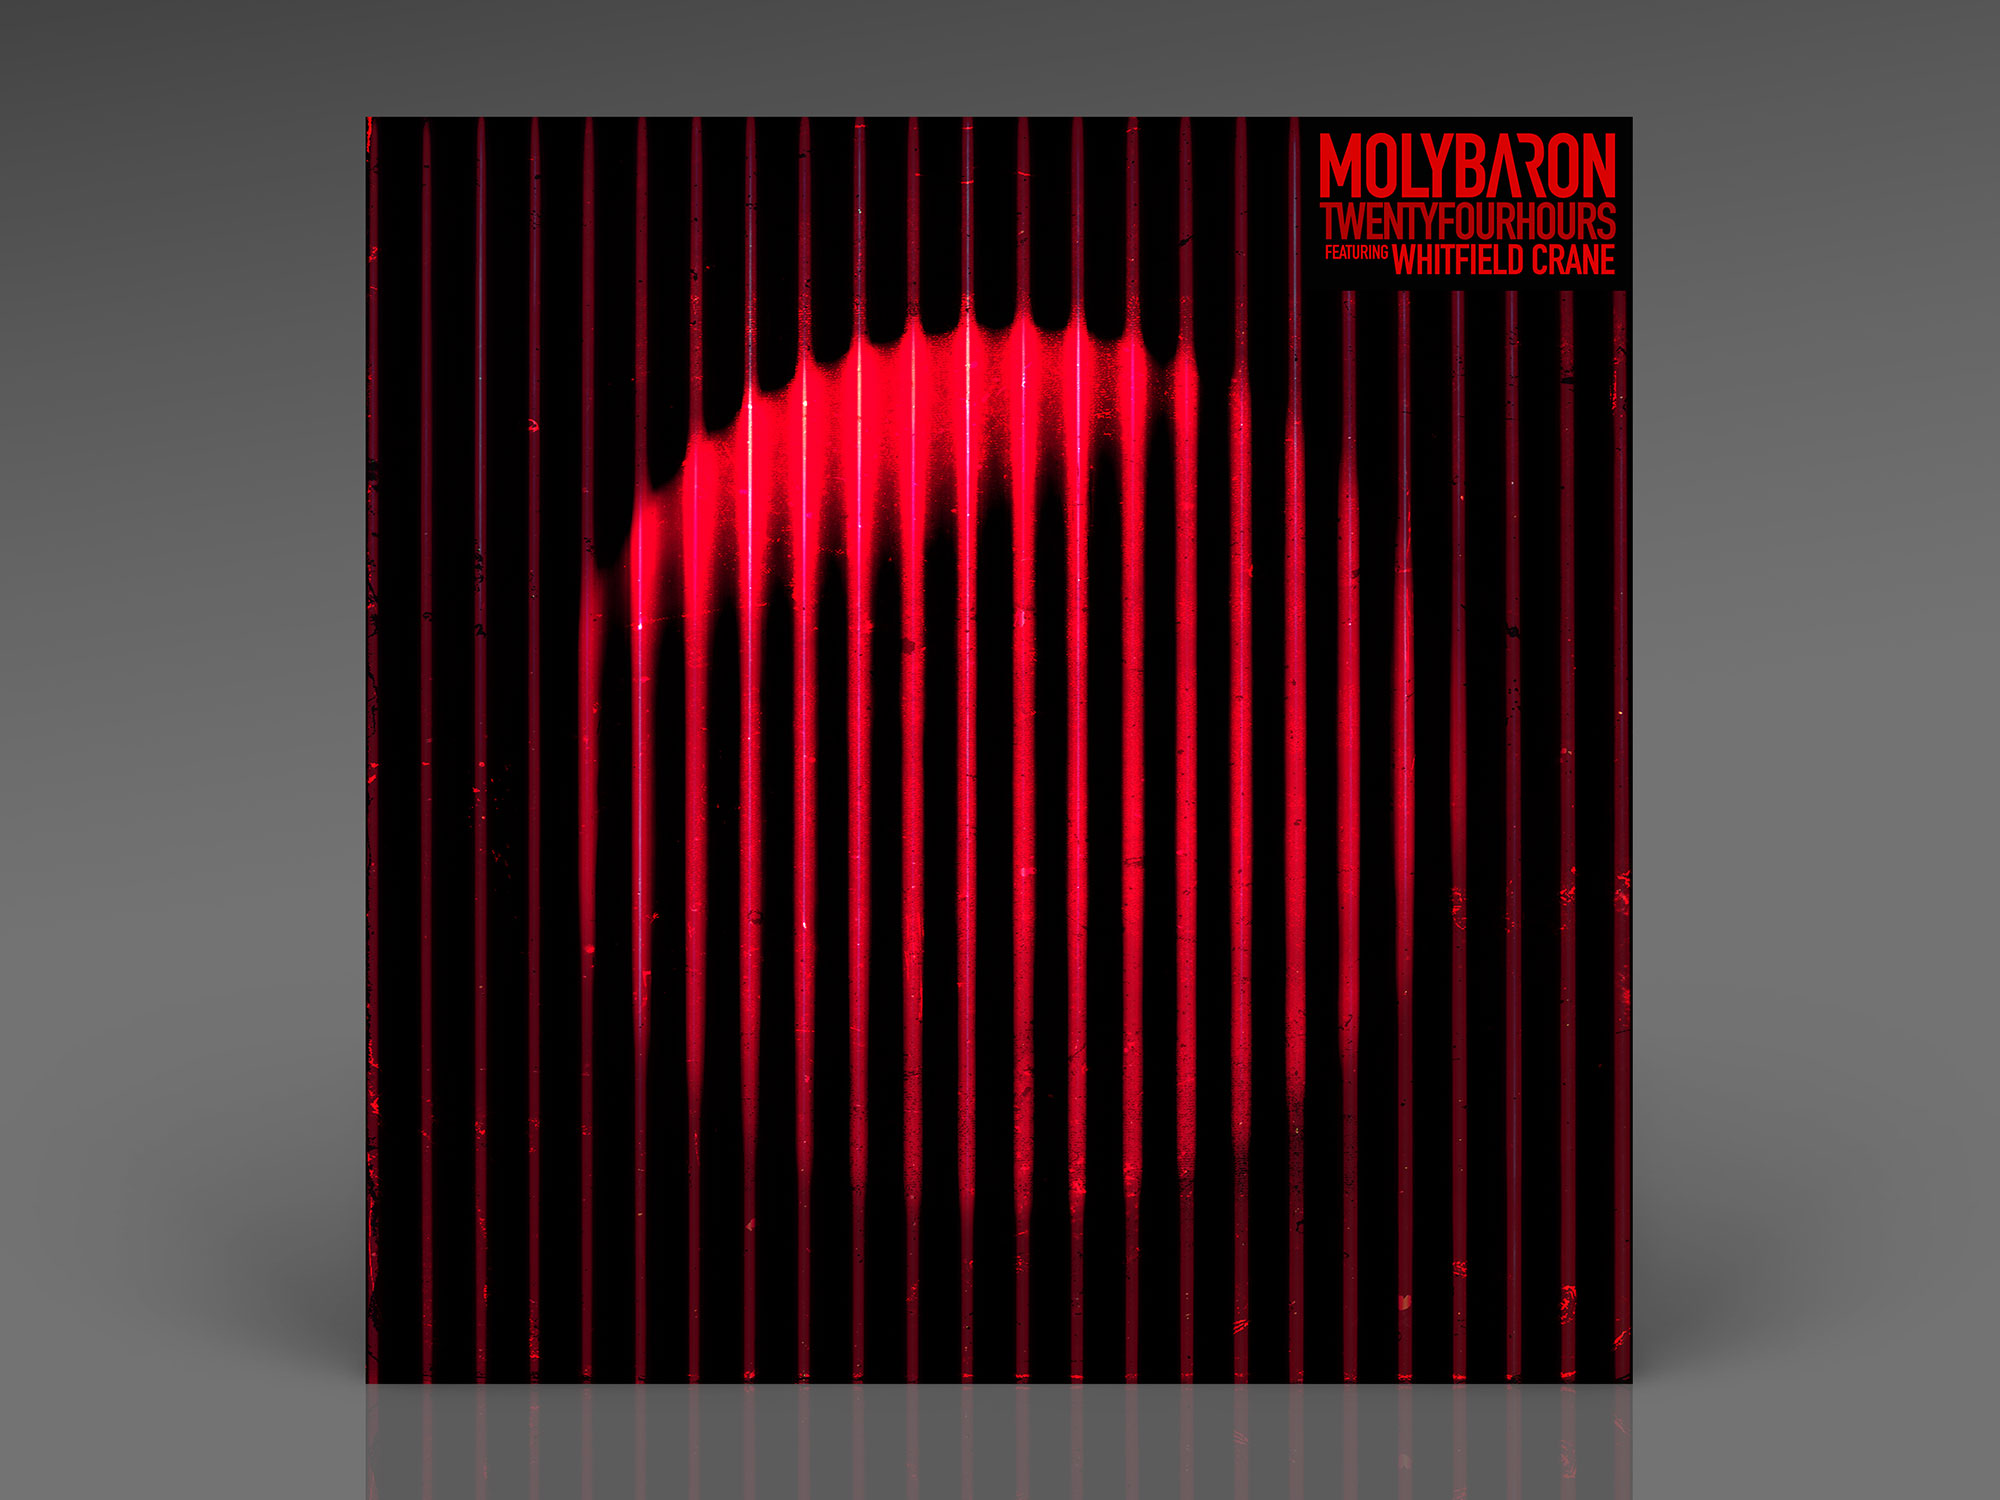 Molybaron Album Cover Graphic Design London Dublin